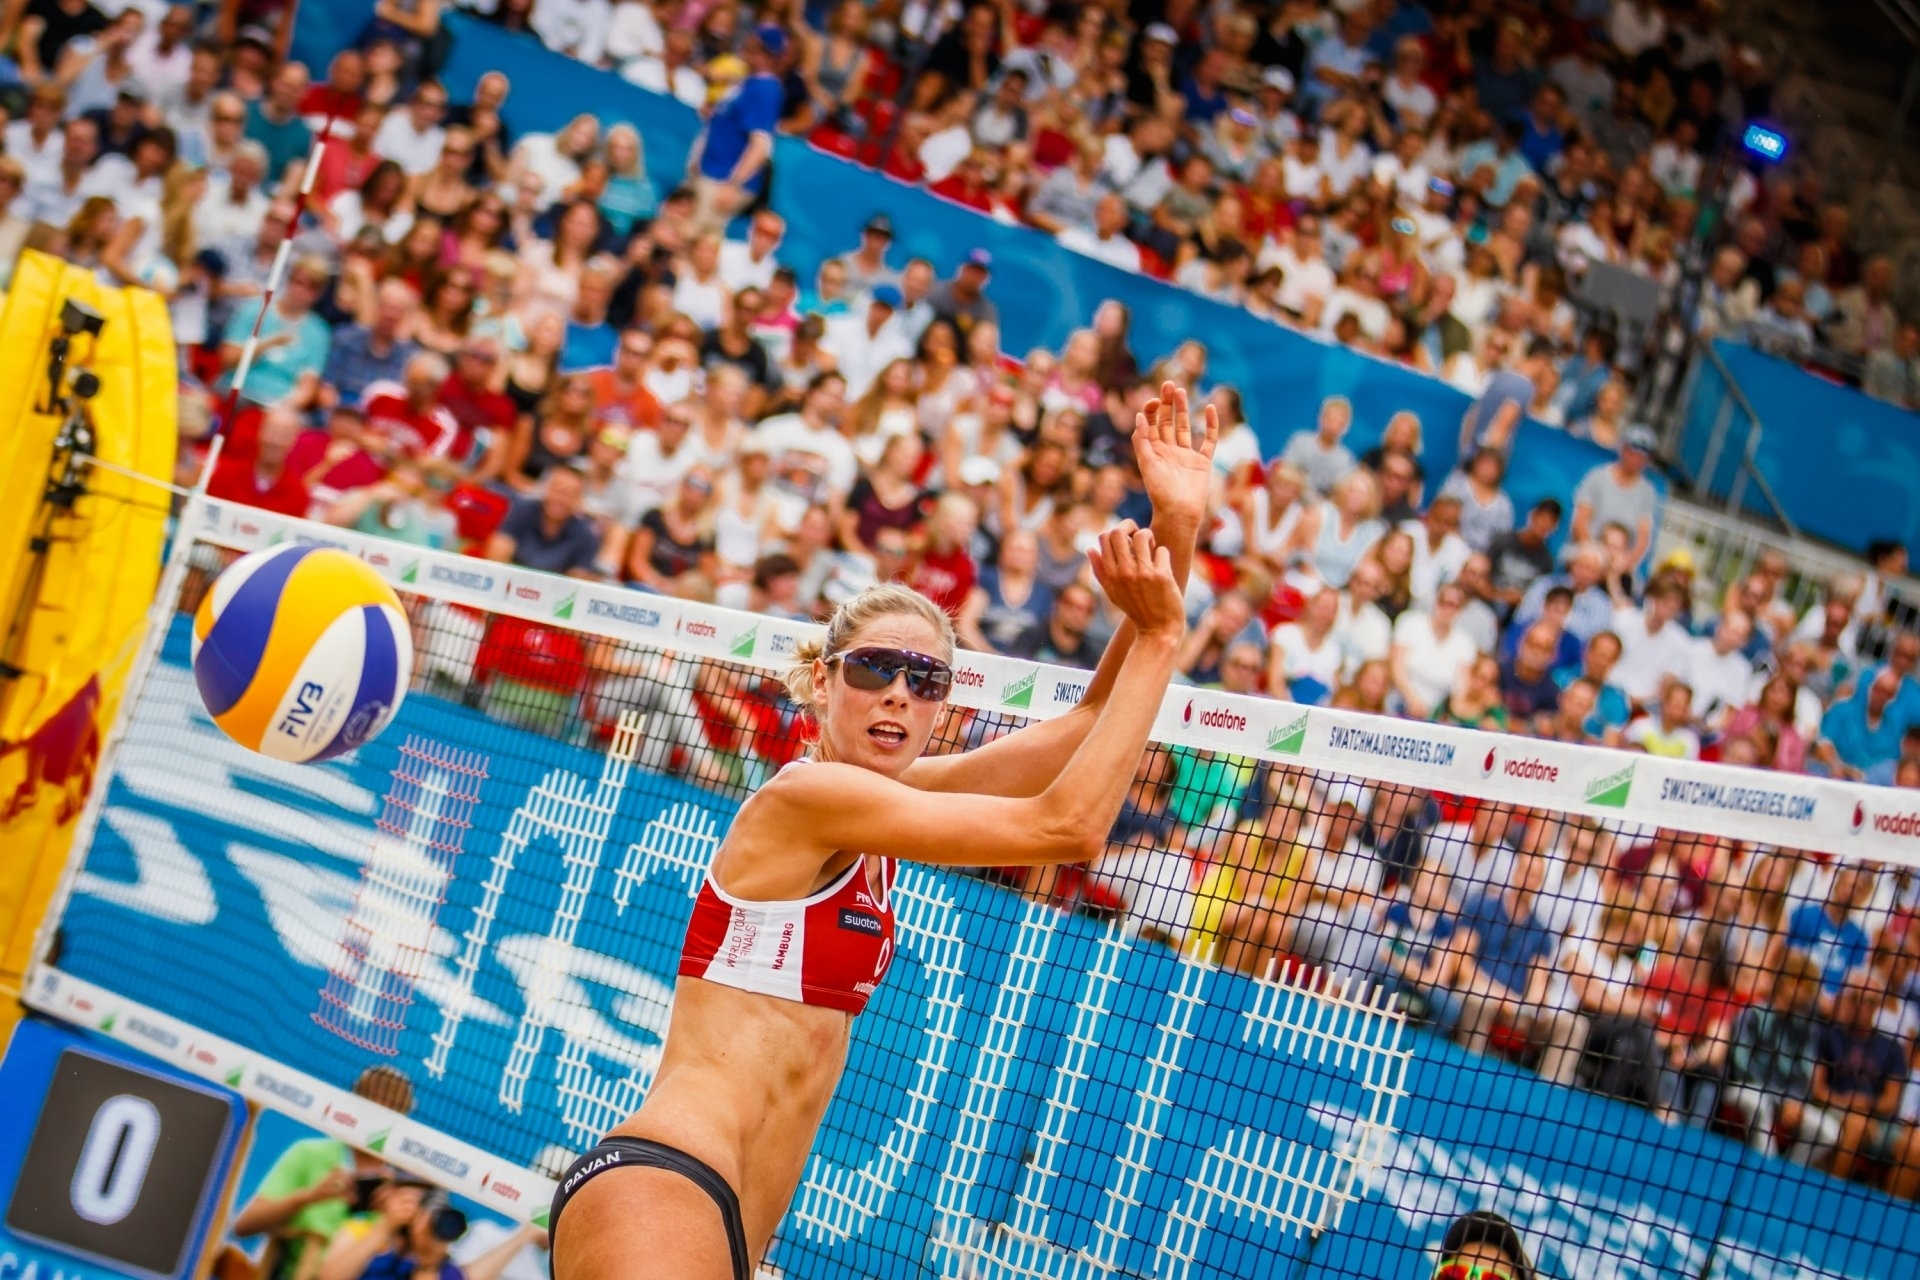 Will the extra touch after the block help master blocks such as Canada's Sarah Pavan?